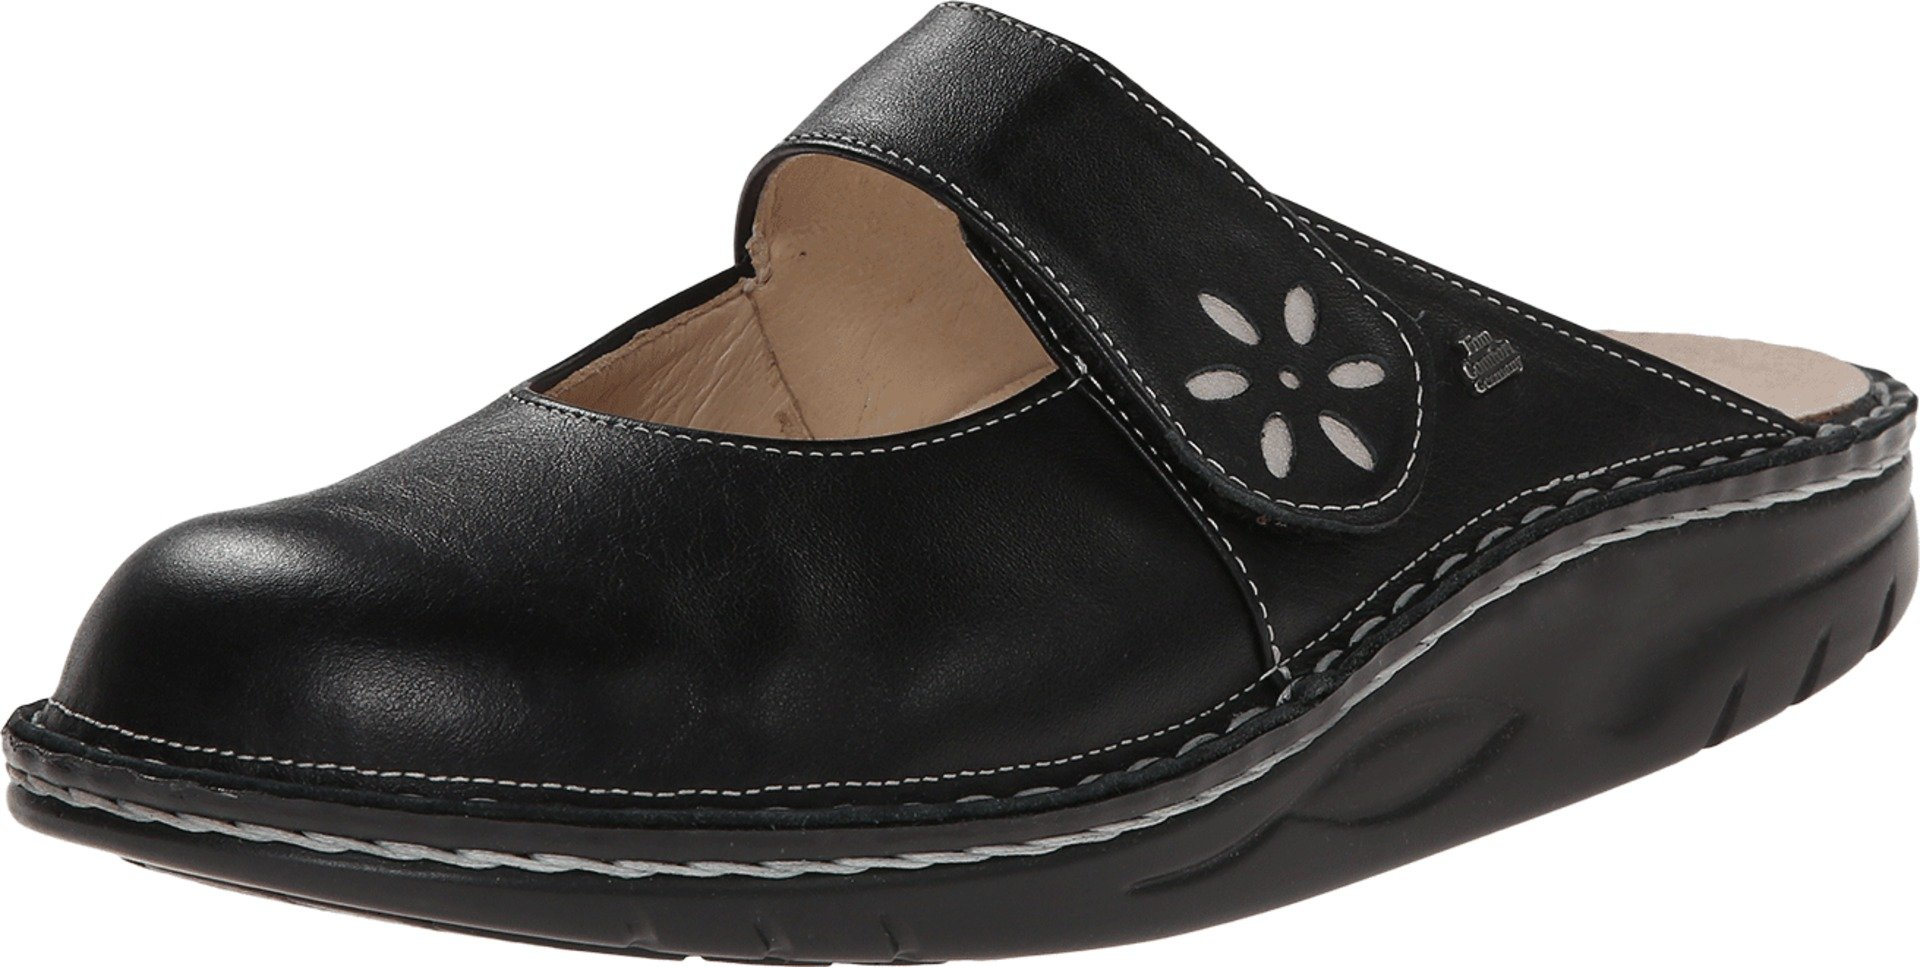 Finn Comfort Women's Side Clog,Black/Silver,40 EU (US Women's 9 M)